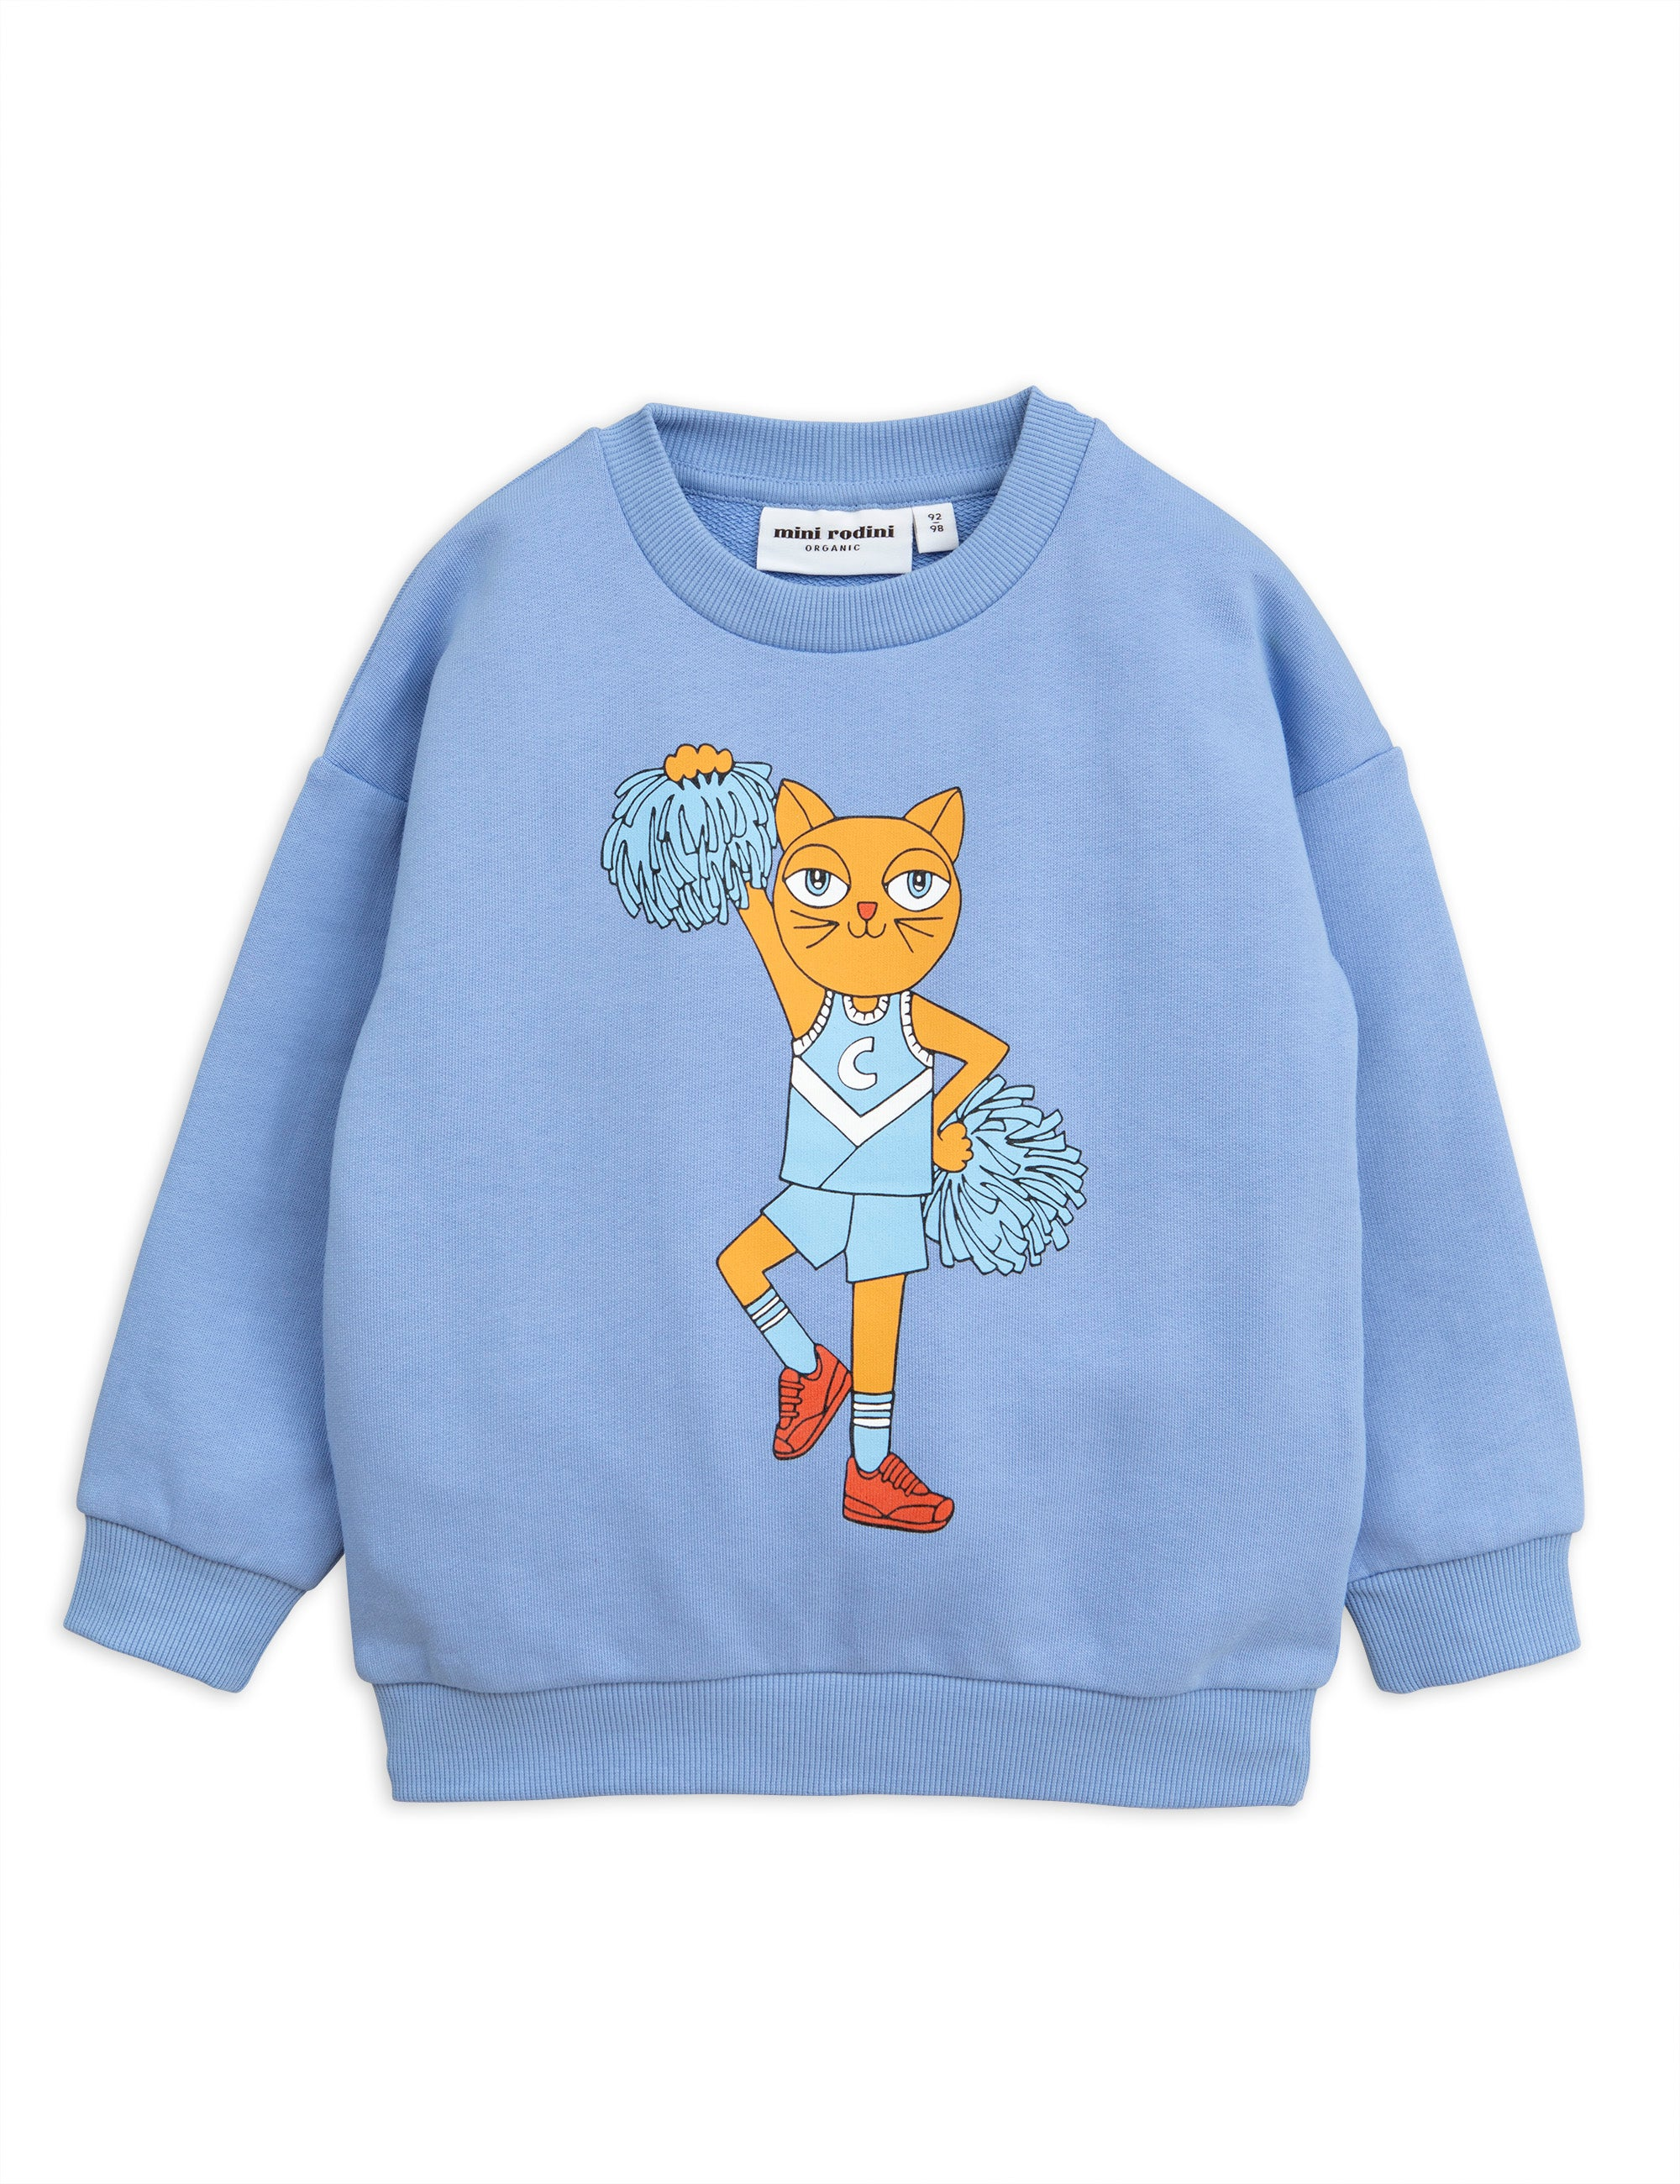 Mini Rodini Cheercat Sweatshirt - Blue